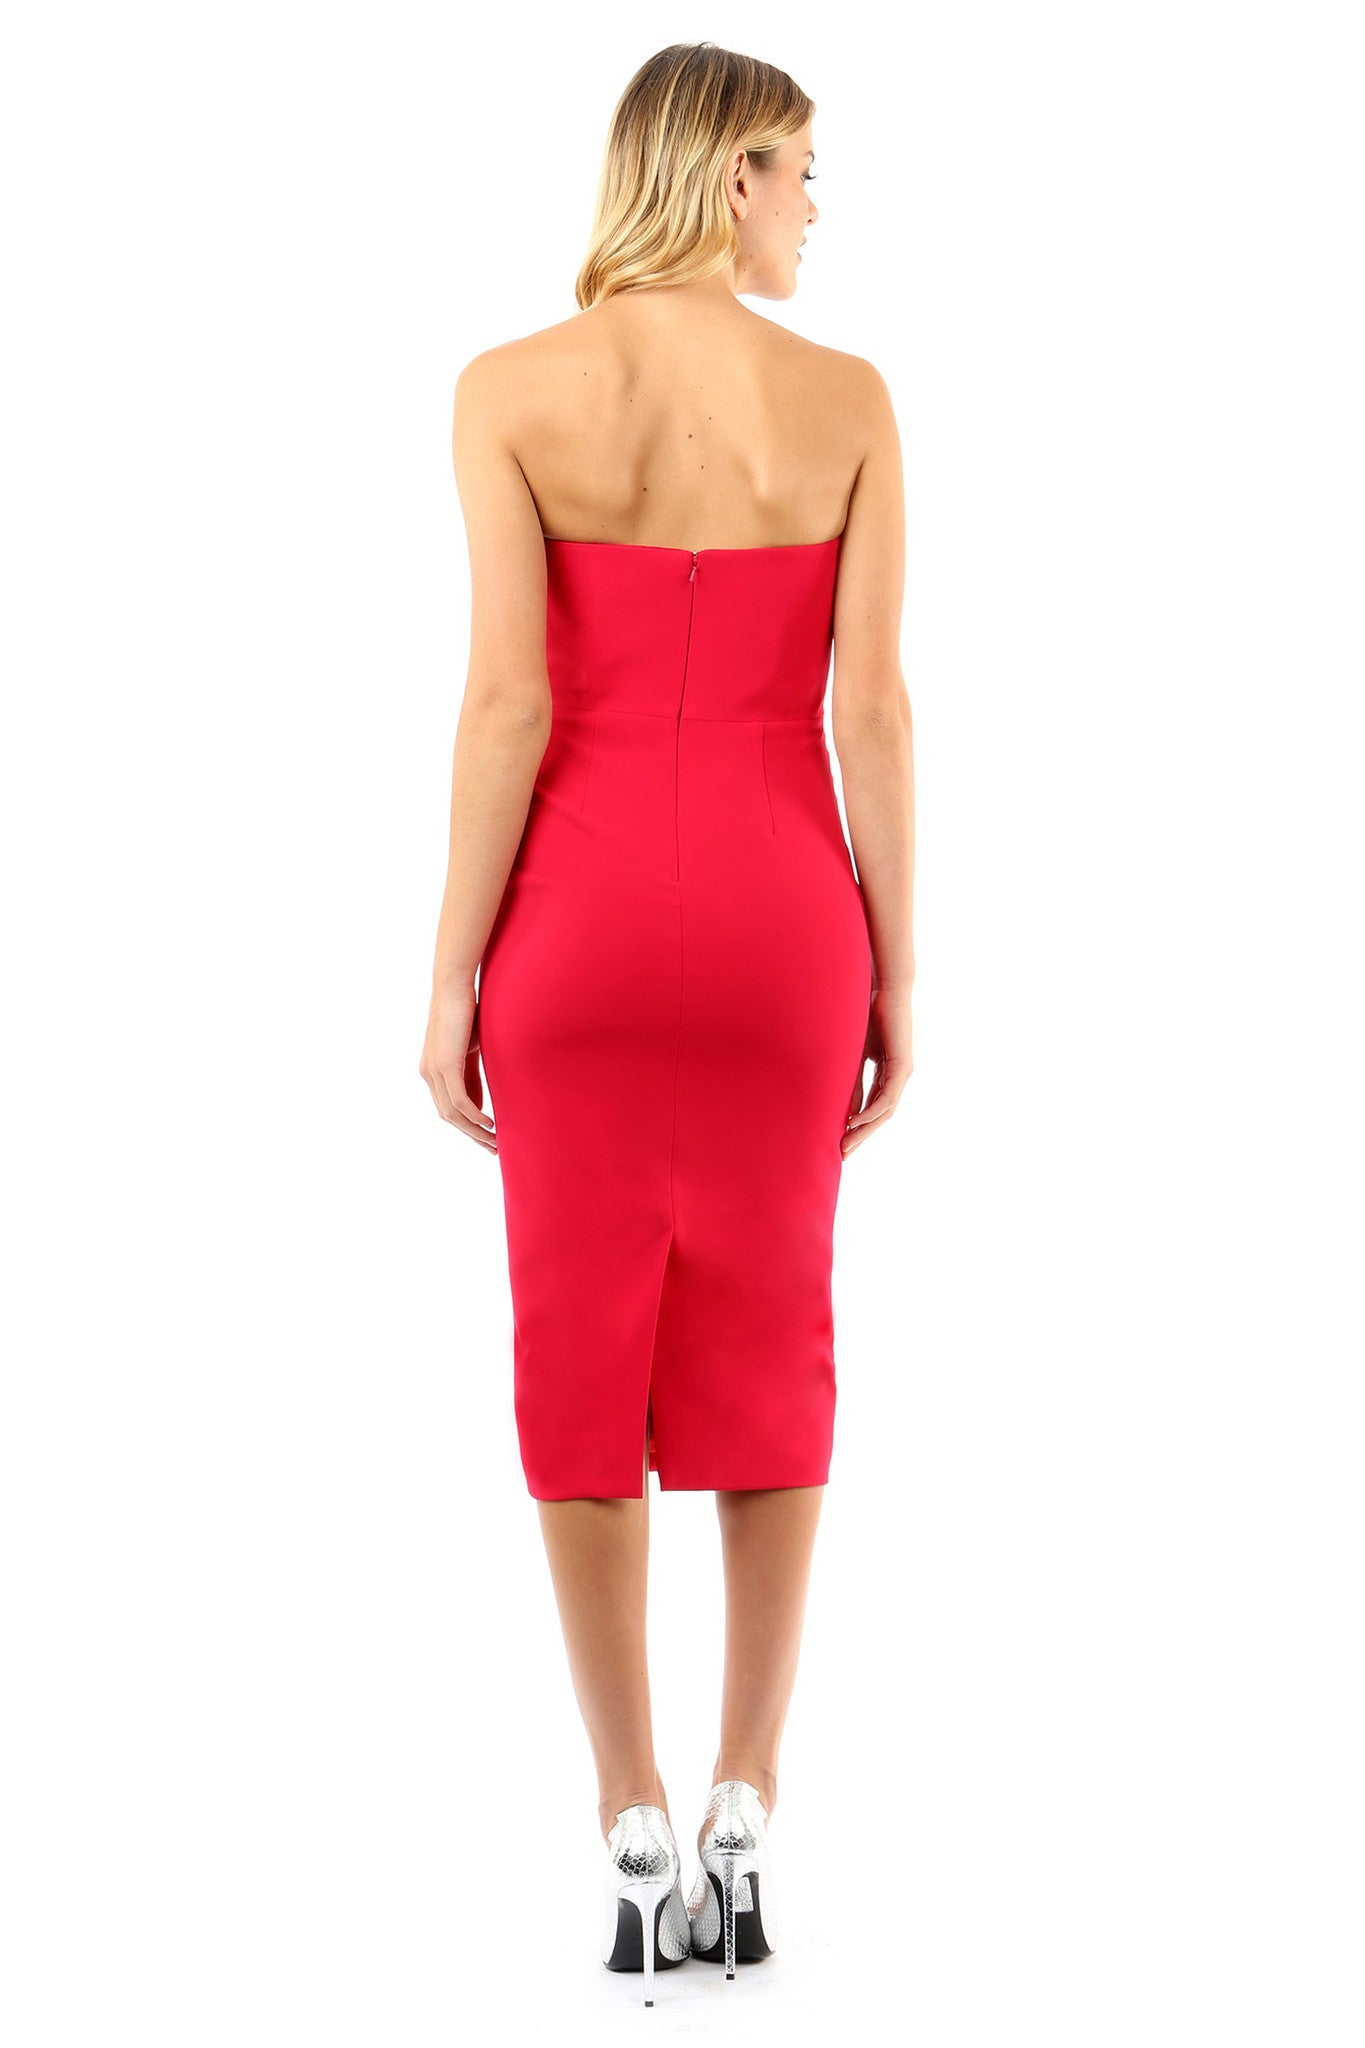 Jay Godfrey Rose Strapless Ruffle Dress - Back View